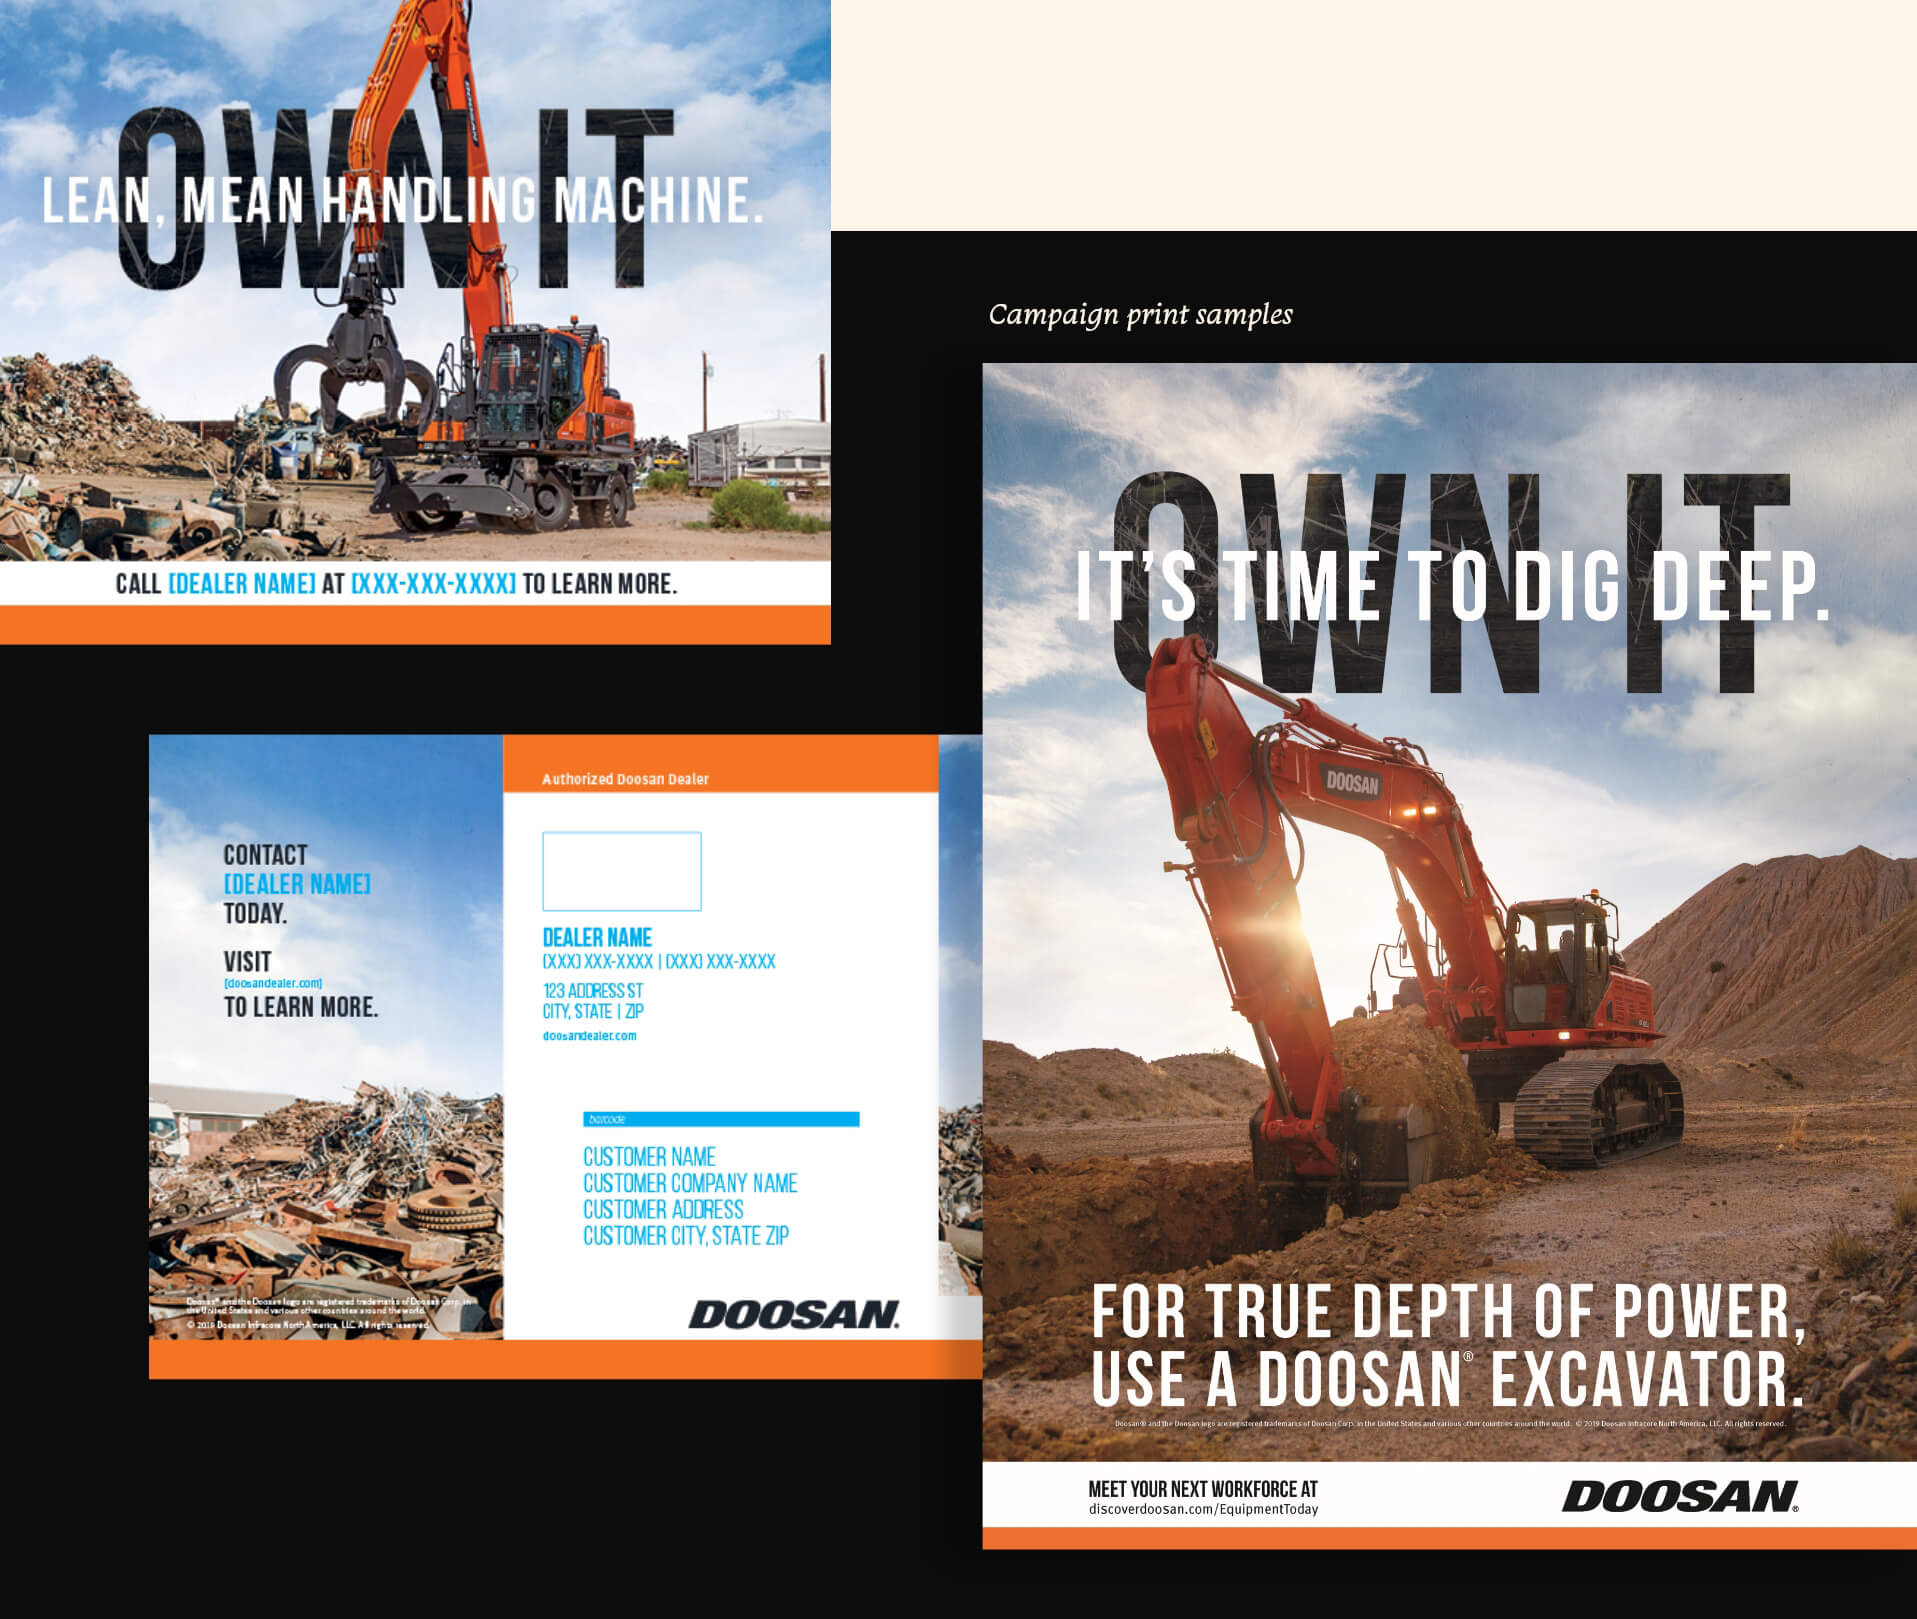 Doosan OWN IT Campaign Highlights/Screenshots & Print Campaign